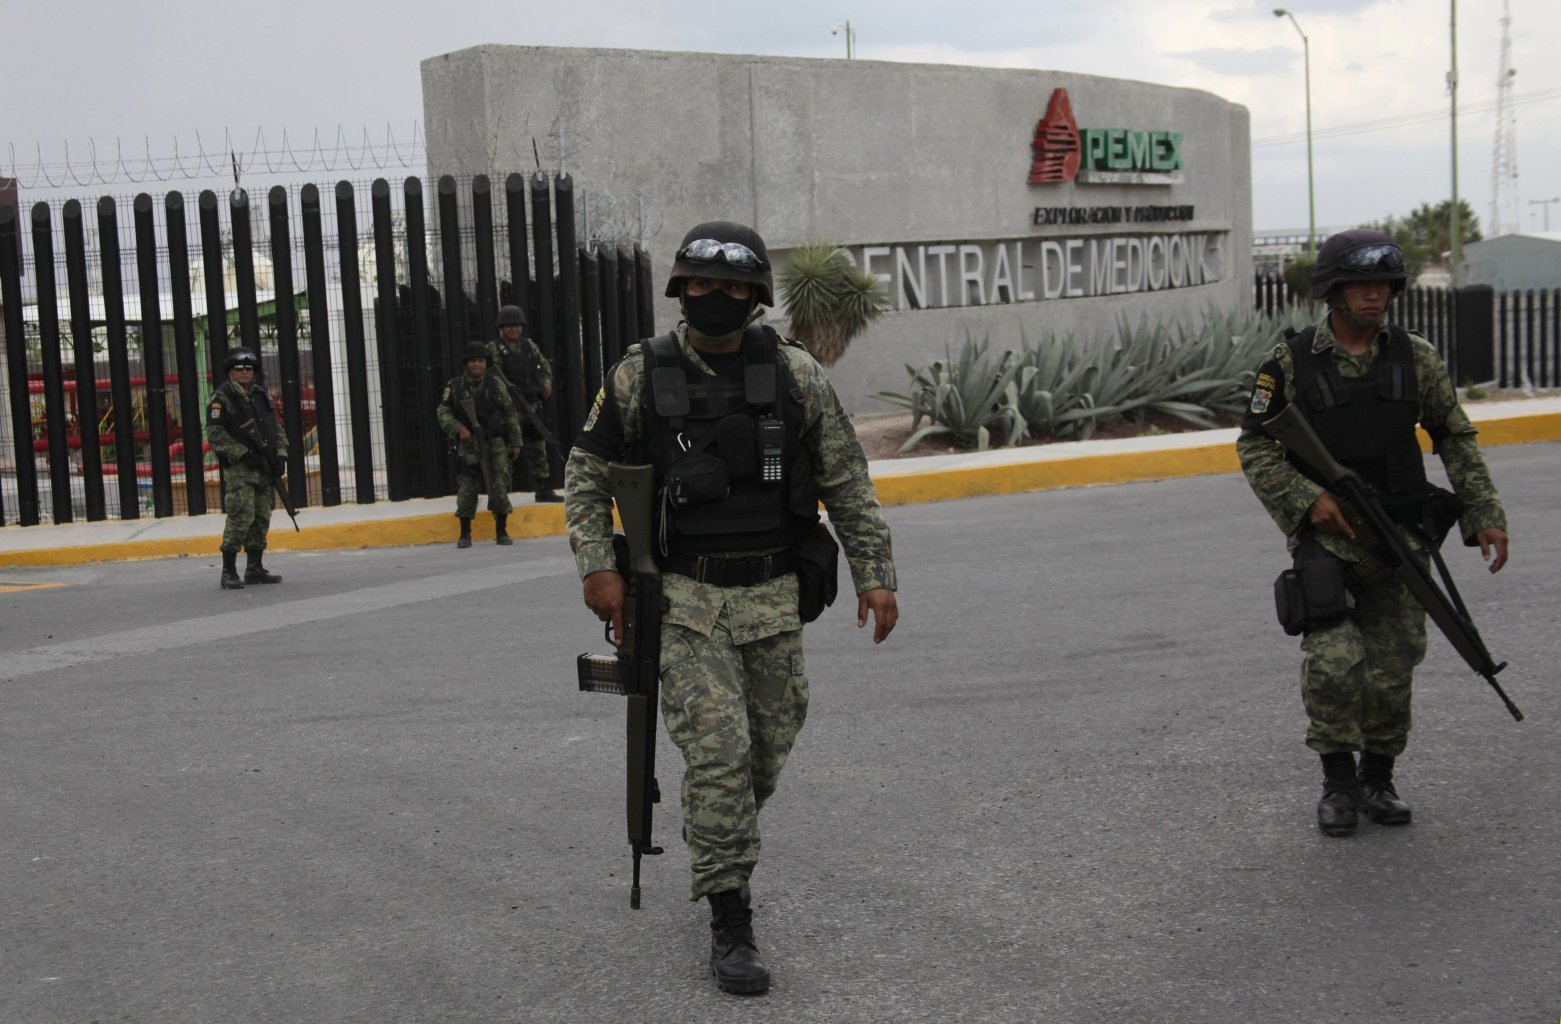 Soldiers walk outside a gas facility of Pemex in Reynosa, September 18, 2012. Ten people were killed in a fire that broke out at a gas facility of Mexican state oil monopoly Pemex in the northern state of Tamaulipas. In a statement, Pemex said 10 of its workers had been killed at the gas compression station near the city of Reynosa on Tuesday. The cause of the blaze had not been determined but Pemex said the fire was extinguished by early Tuesday afternoon. The facility belongs to its exploration and production arm, PEP.The facility sends gas imports from the United States as well as domestic gas production from Mexico's Burgos fields to the industrial city of Monterrey. REUTERS/Daniel Becerril